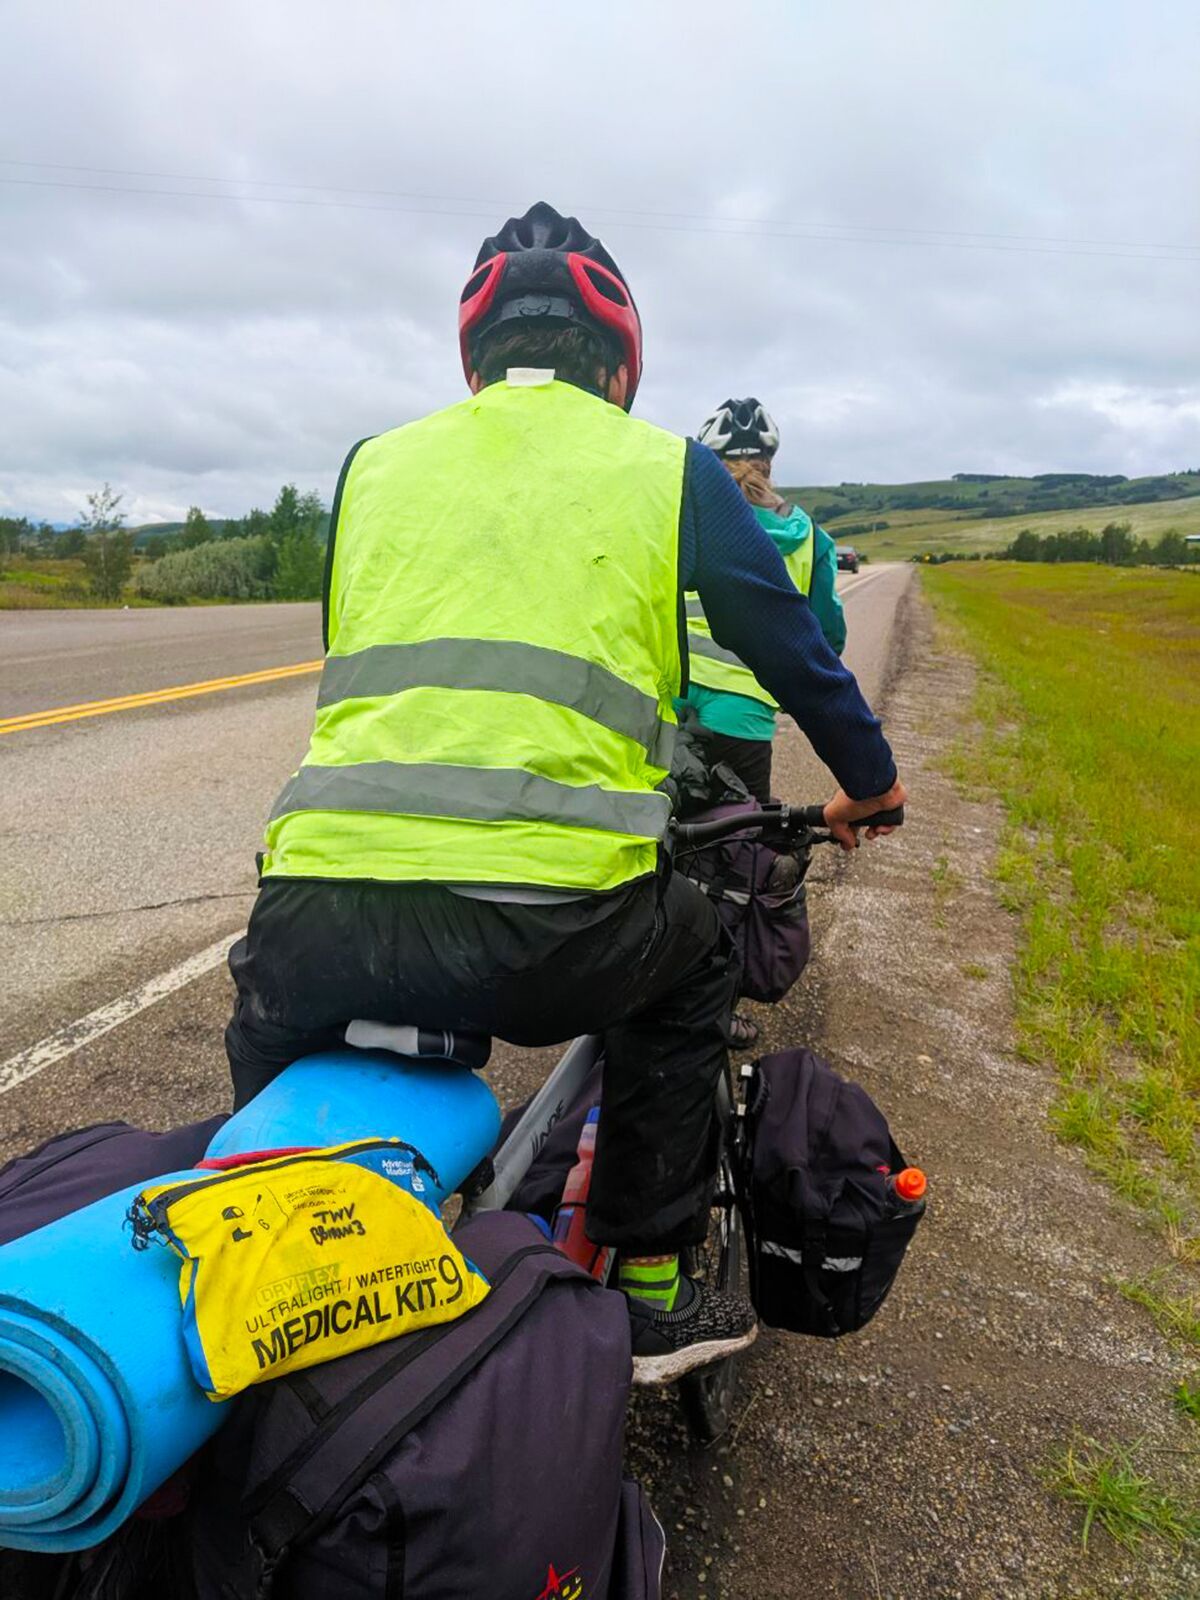 Adventure Medical Kits joins the ride with Trips for Kids Calgary (Canada) sponsored by Two Wheel View.